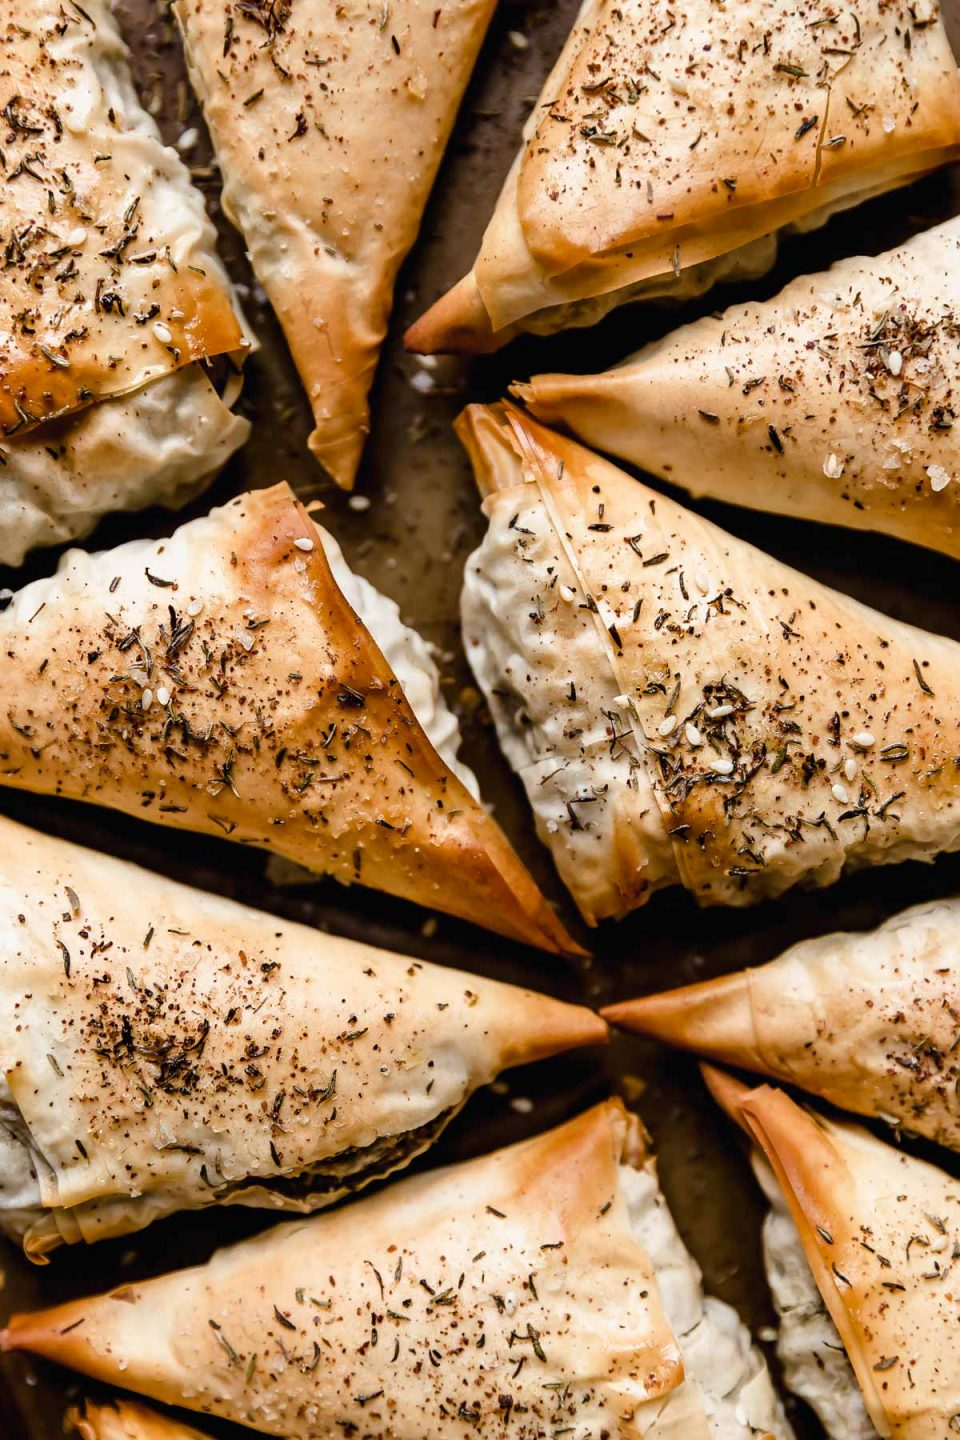 Baked spanakopita triangles on a baking sheet.